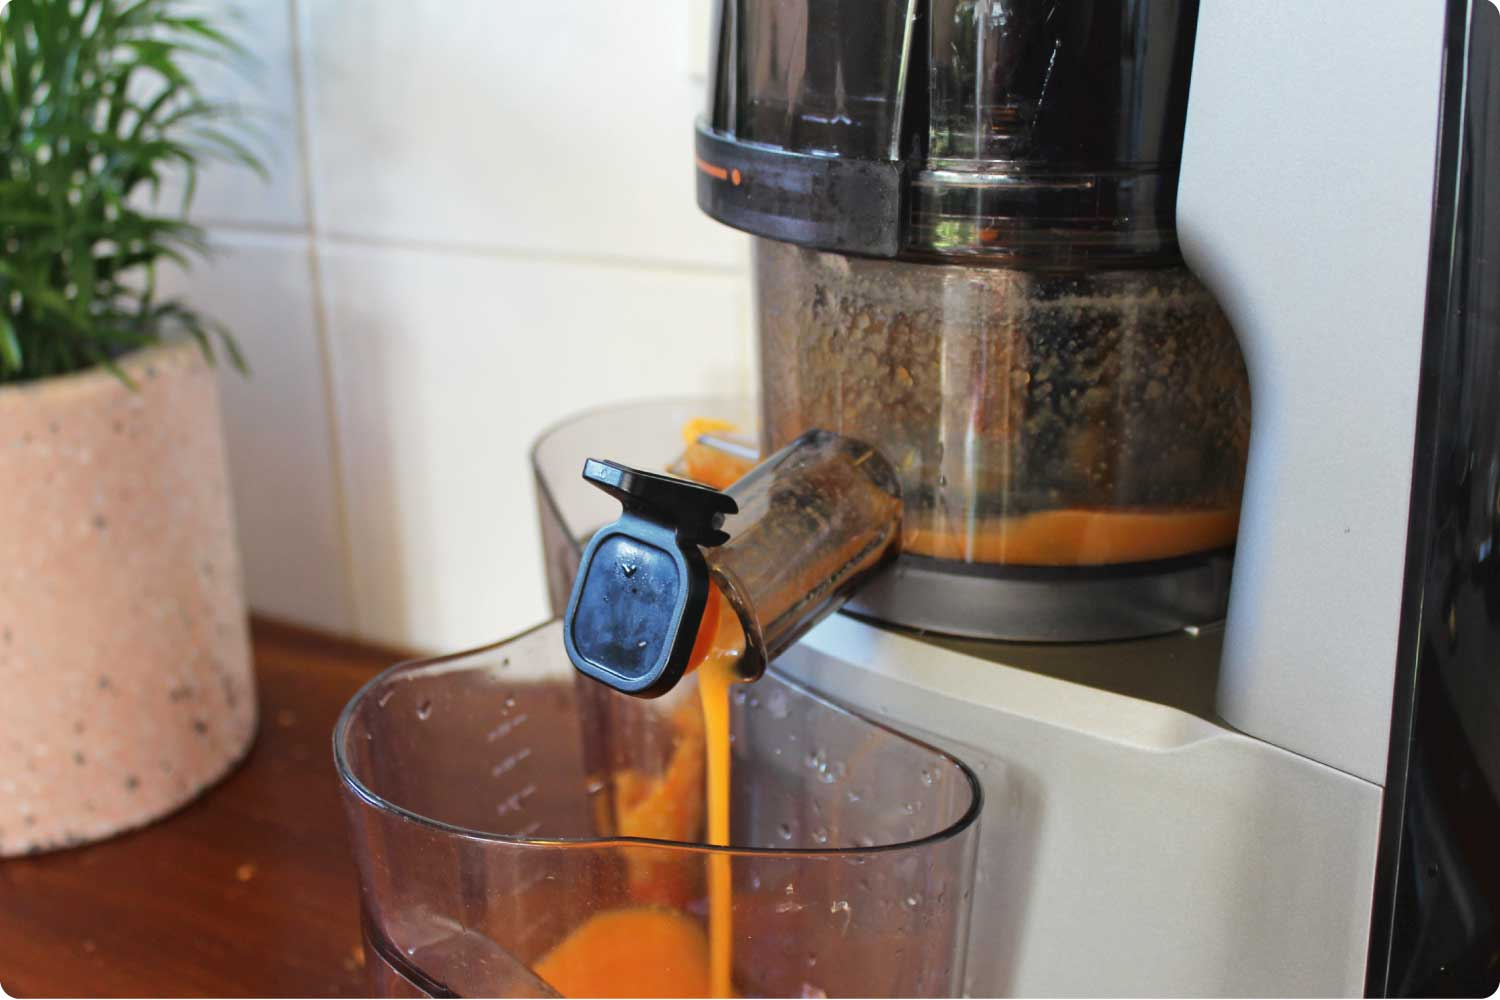 MOD cold press juicer in action